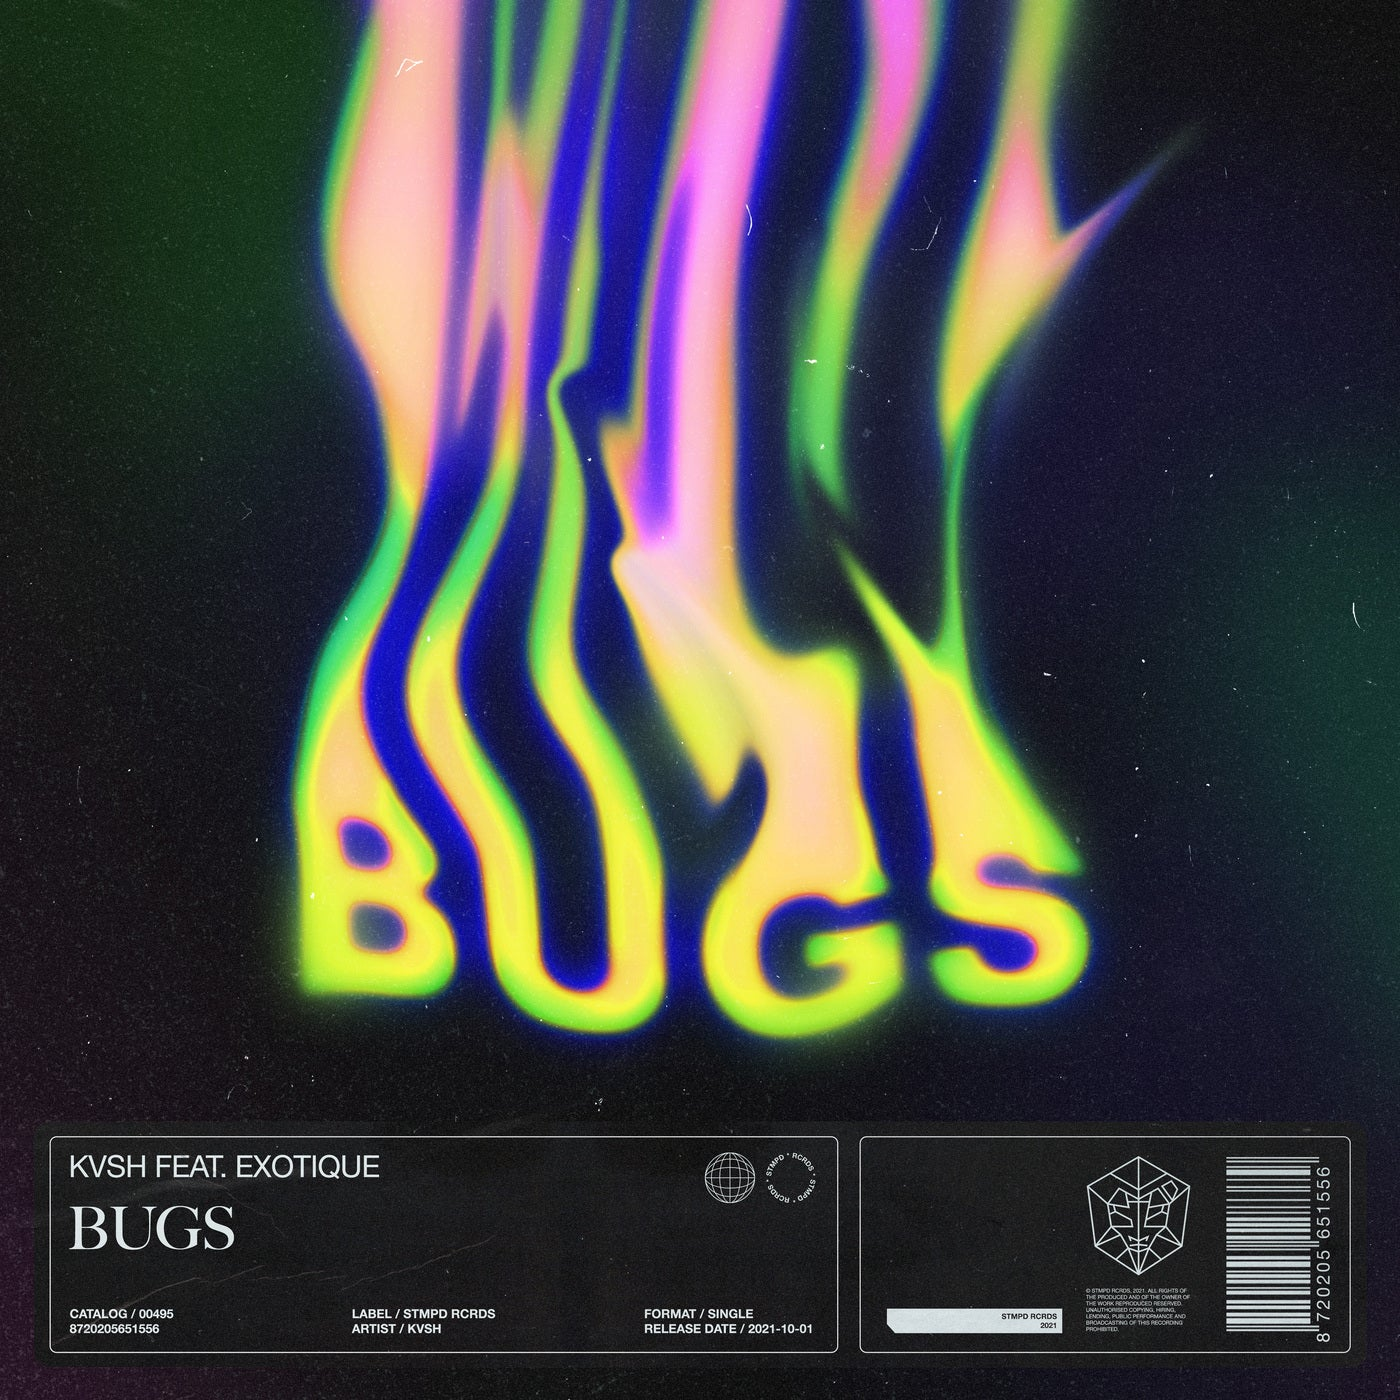 Bugs feat. Exotique (Extended Mix)